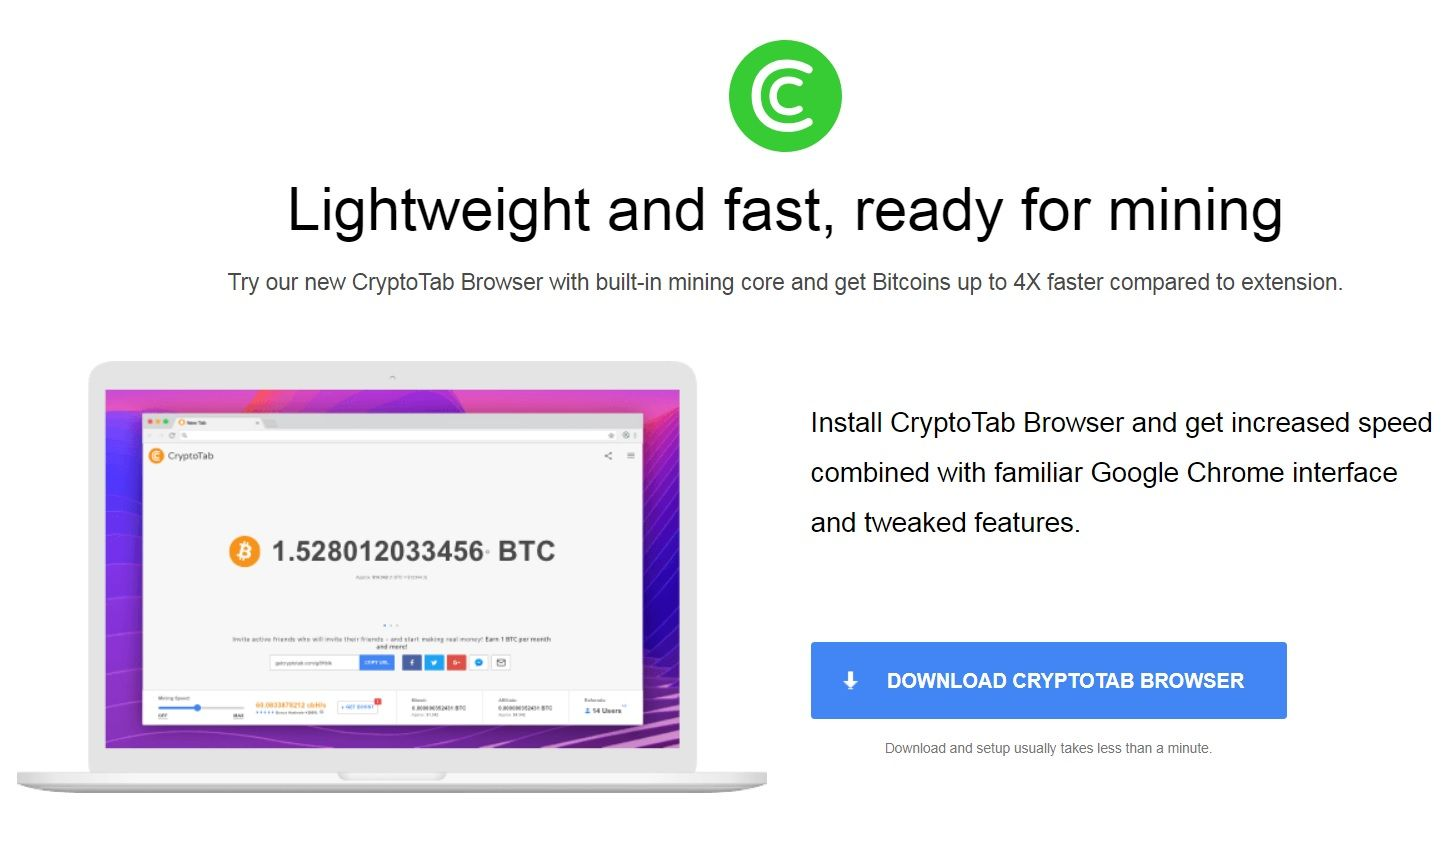 New CryptoTab Browser with built-in mining core and get Bitcoins up